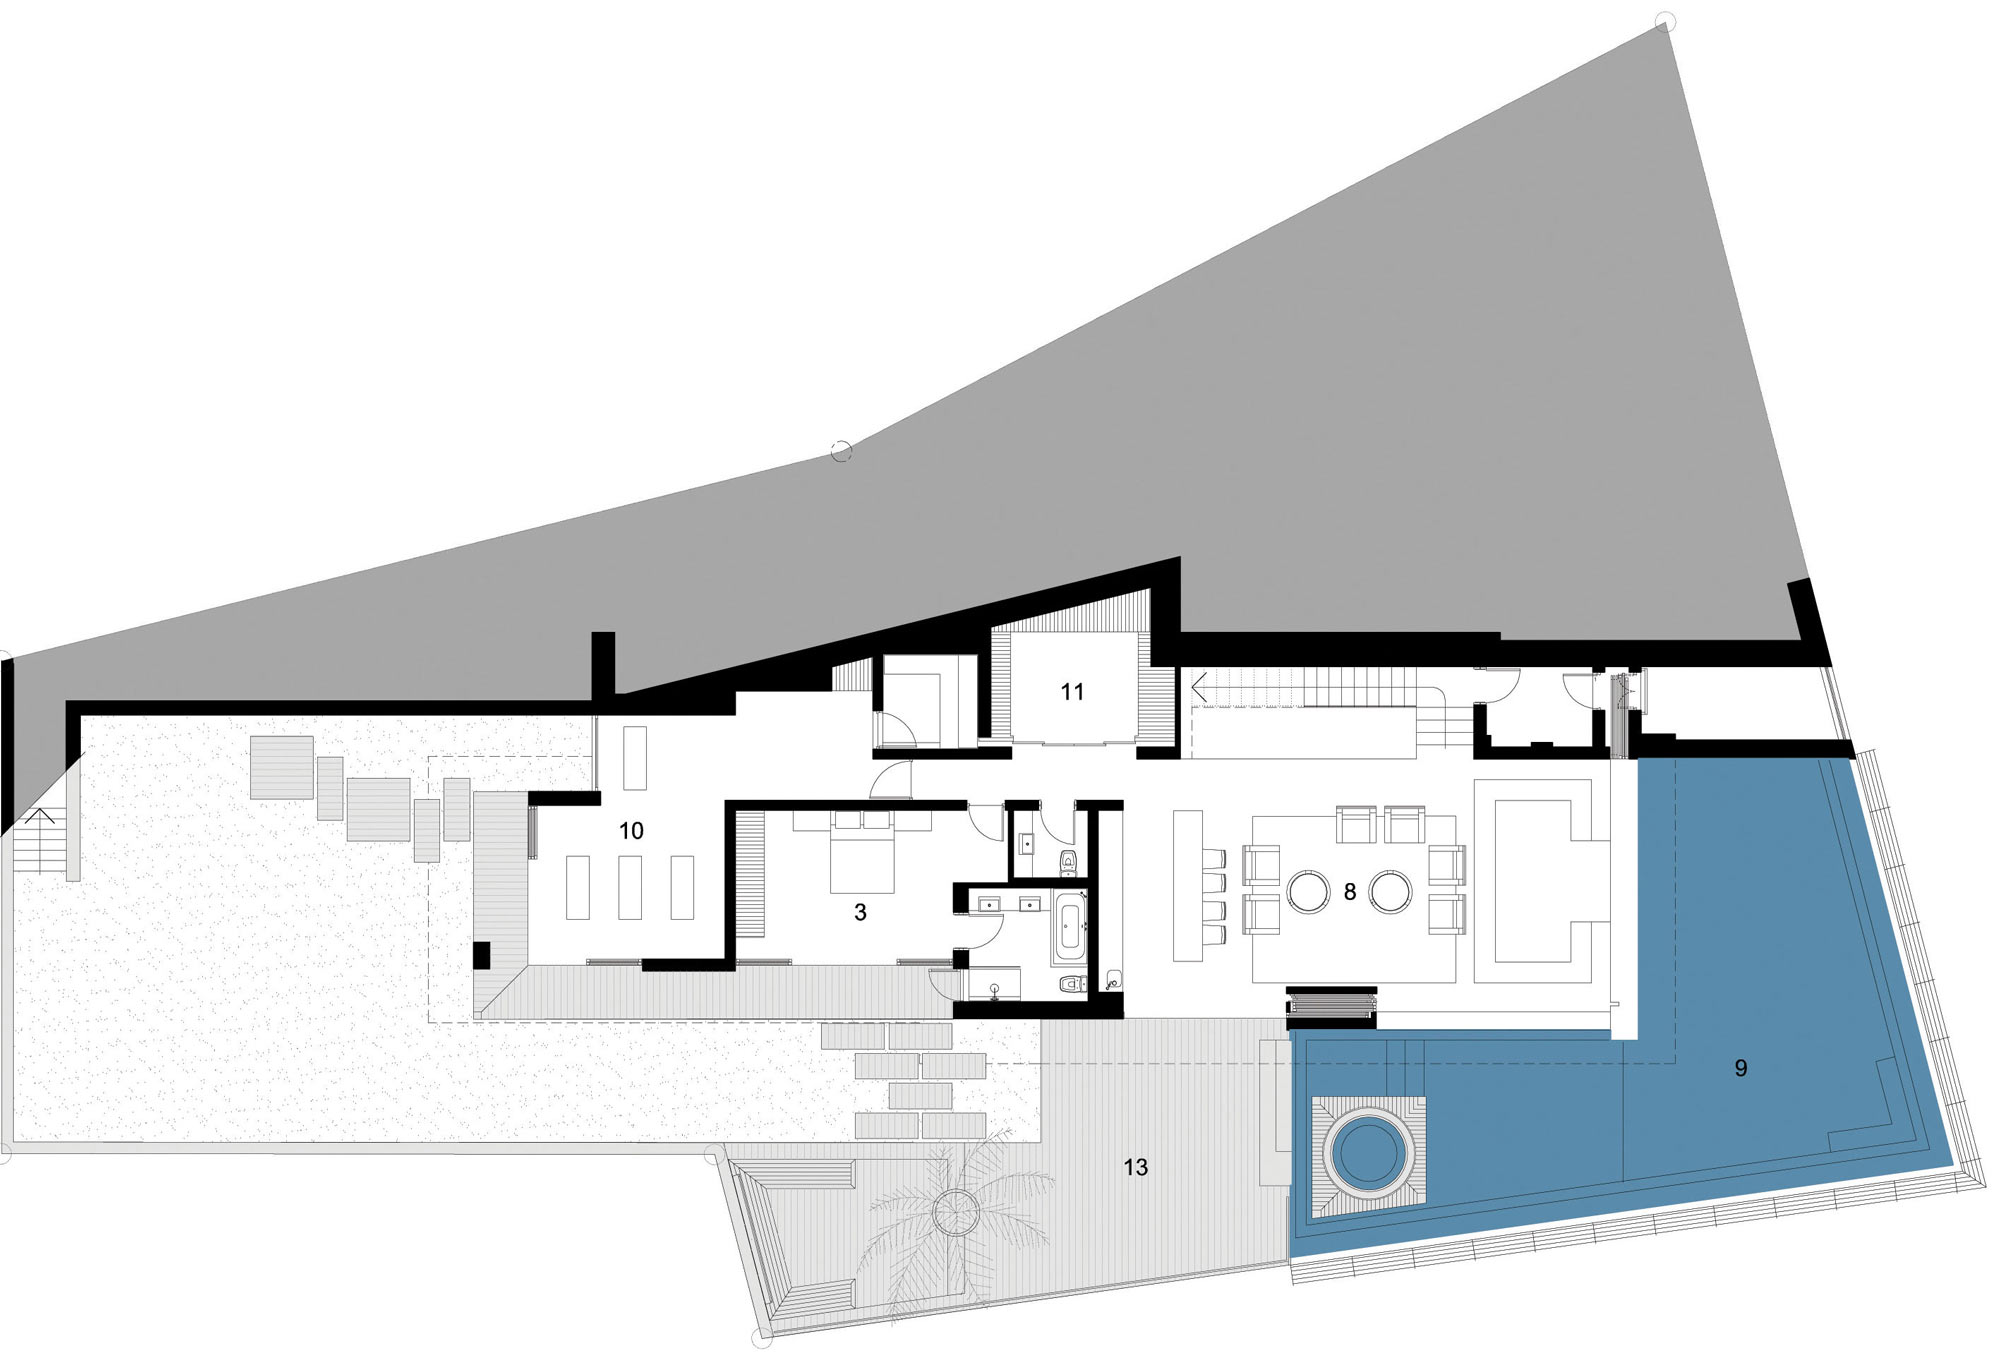 First Floor Plan, St Leon 10 in Cape Town, South Africa by SAOTA and Antoni Associates